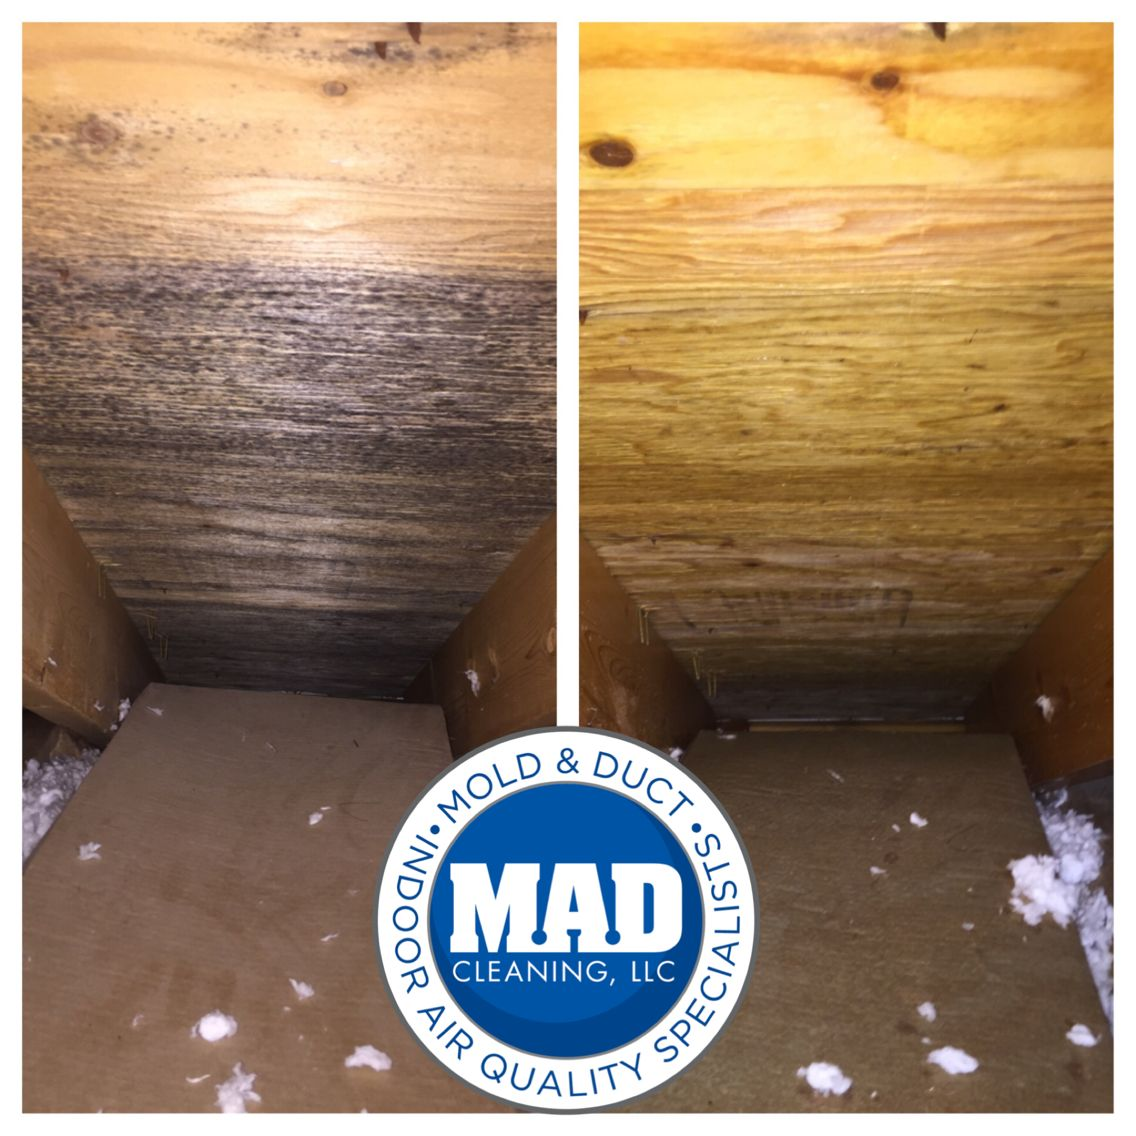 Attic mold removal before & after pics. Mold remover